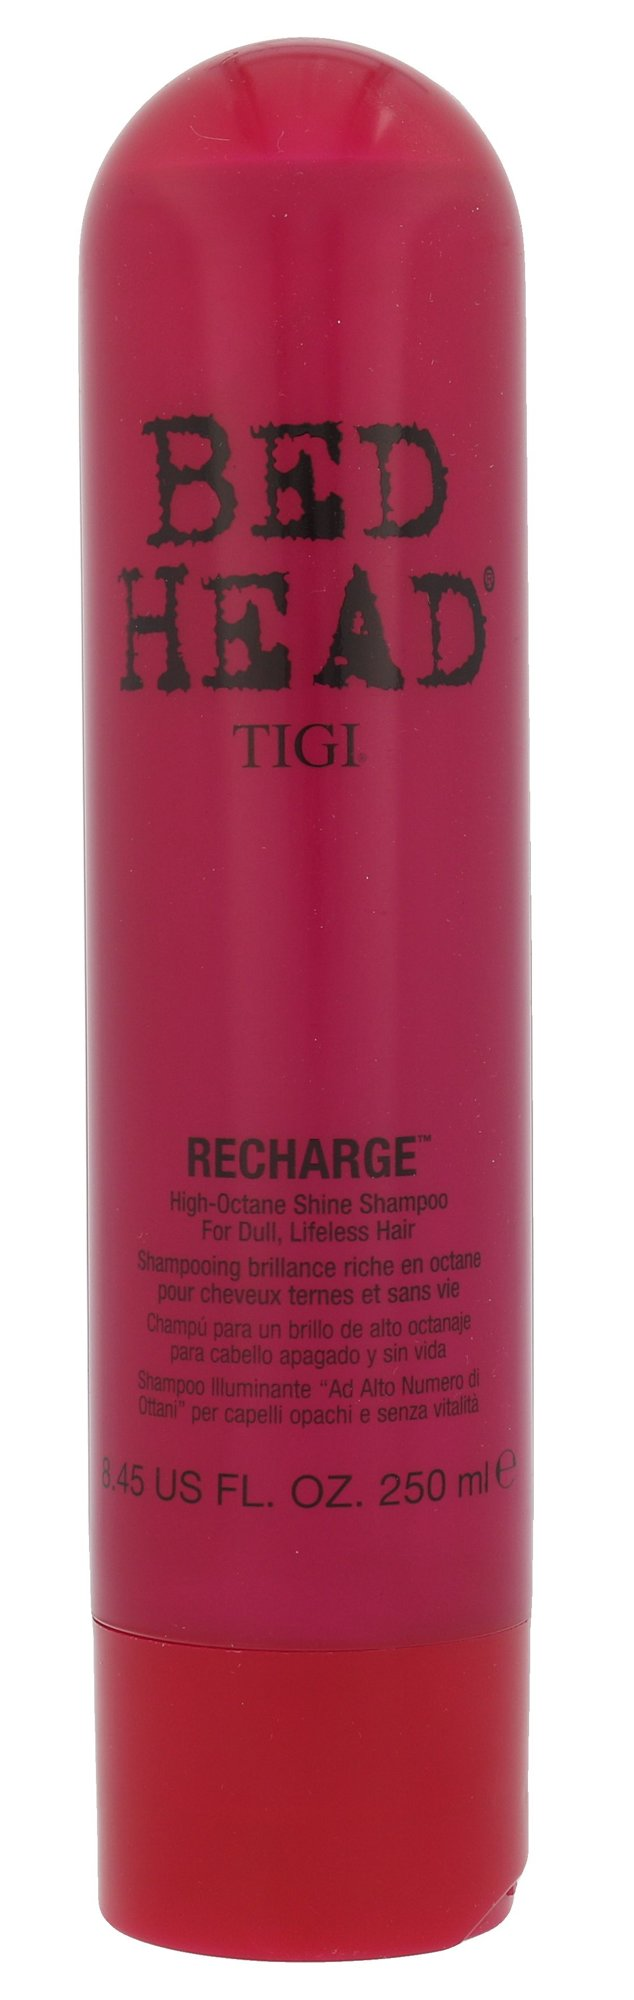 Tigi Bed Head Recharge Cosmetic 250ml